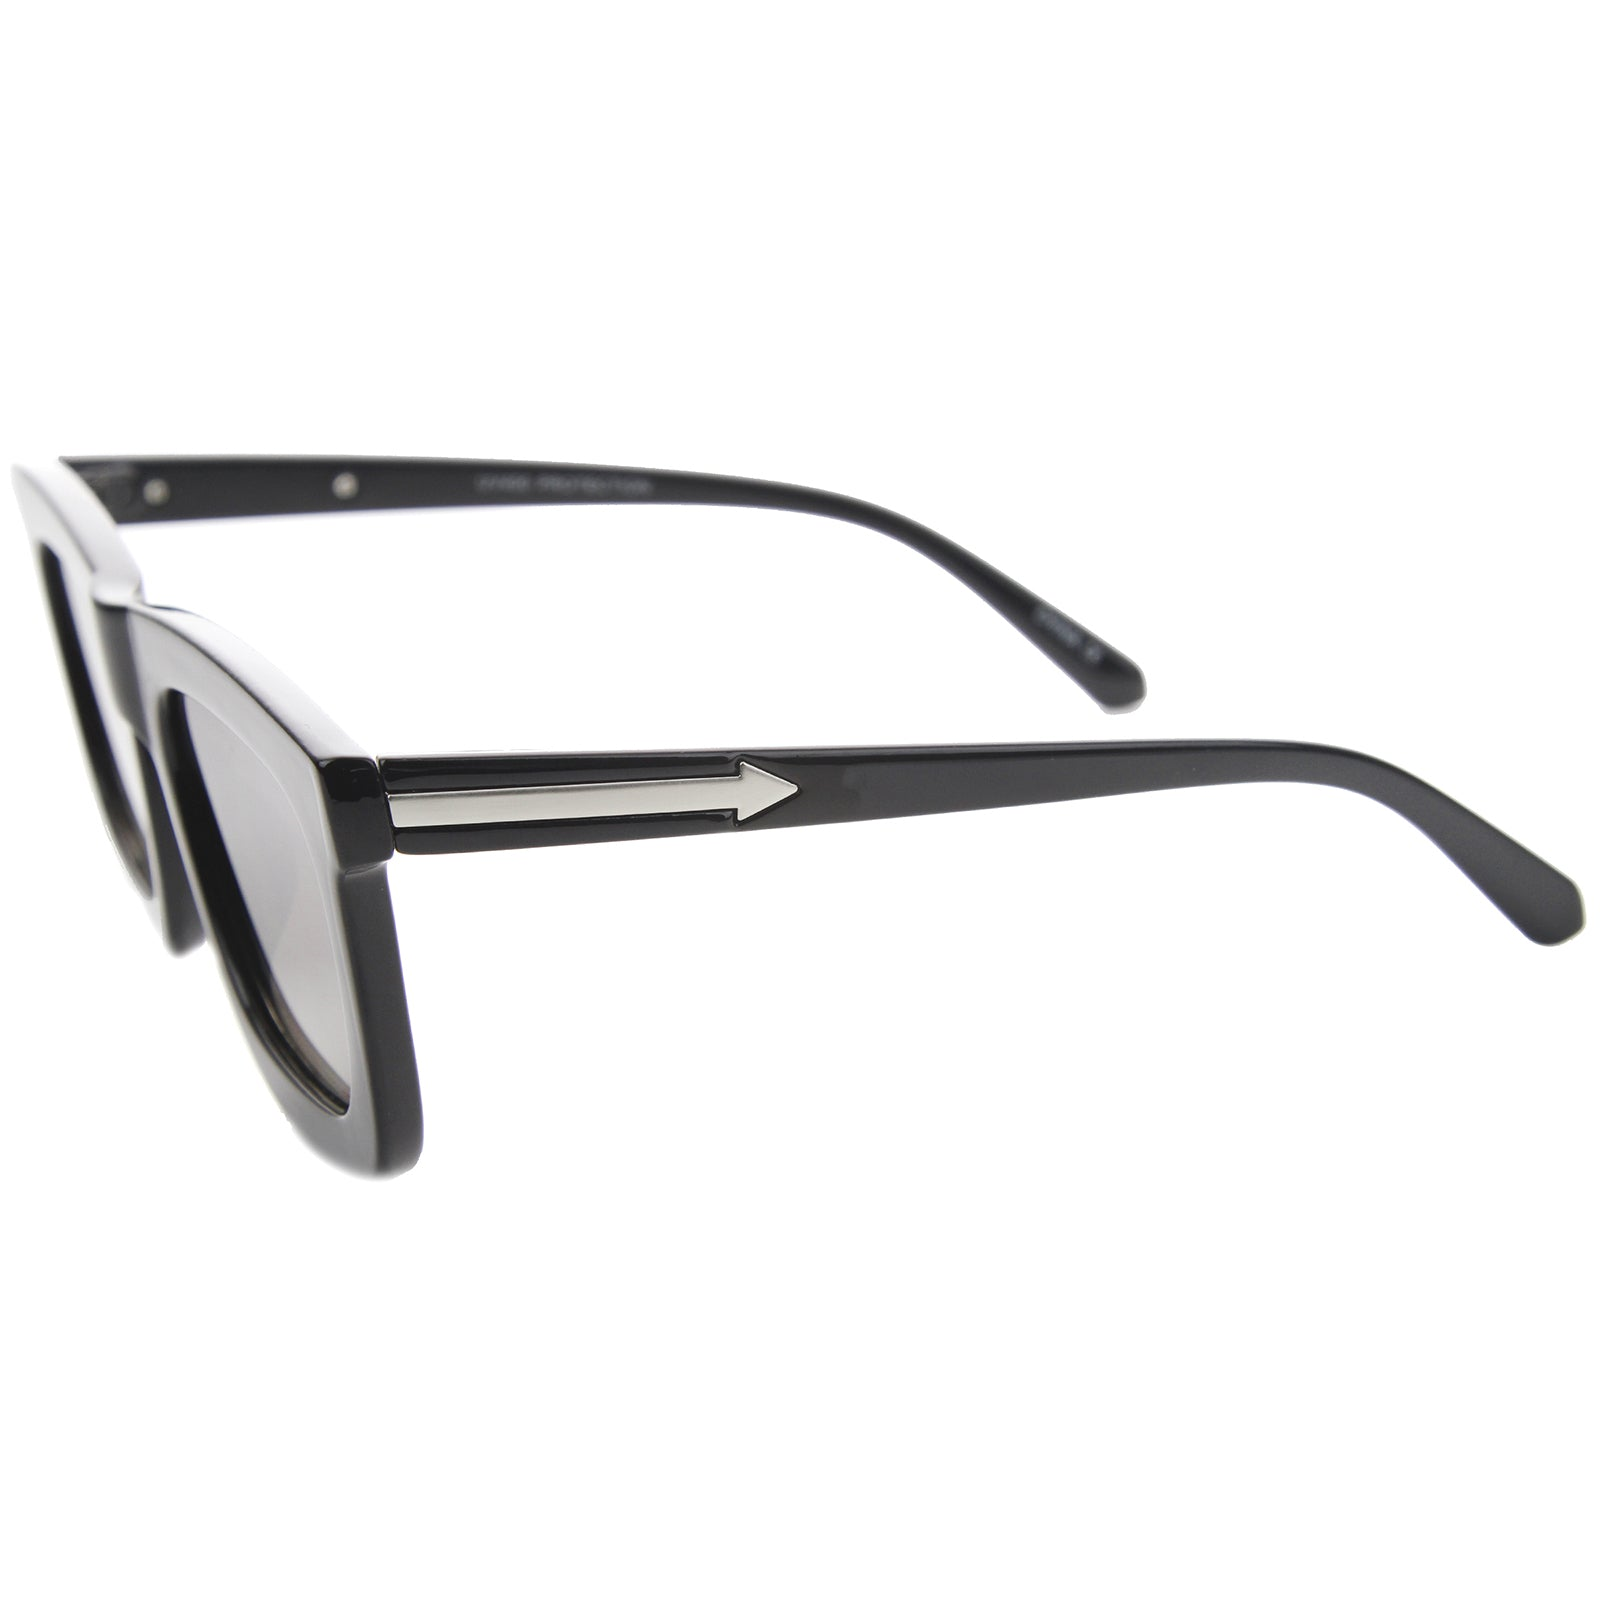 High Fashion Arrow Accented Horn Rimmed Flat Lens Bold Square Sunglasses 65mm - sunglass.la